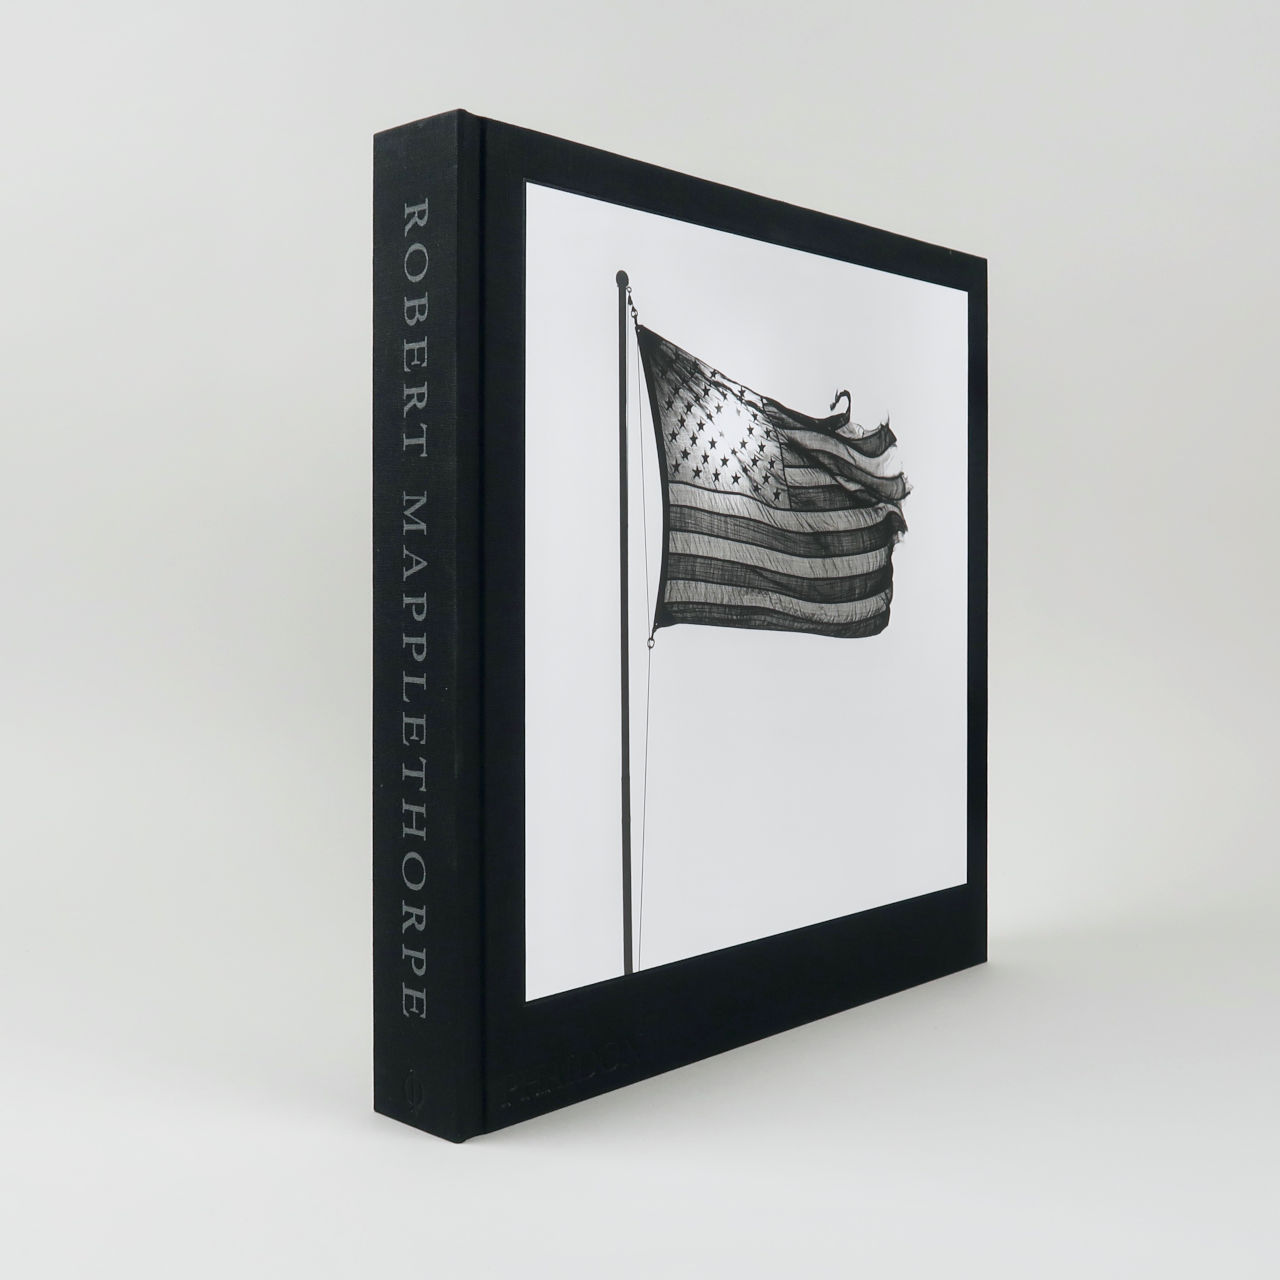 mapplethorpe phaidon